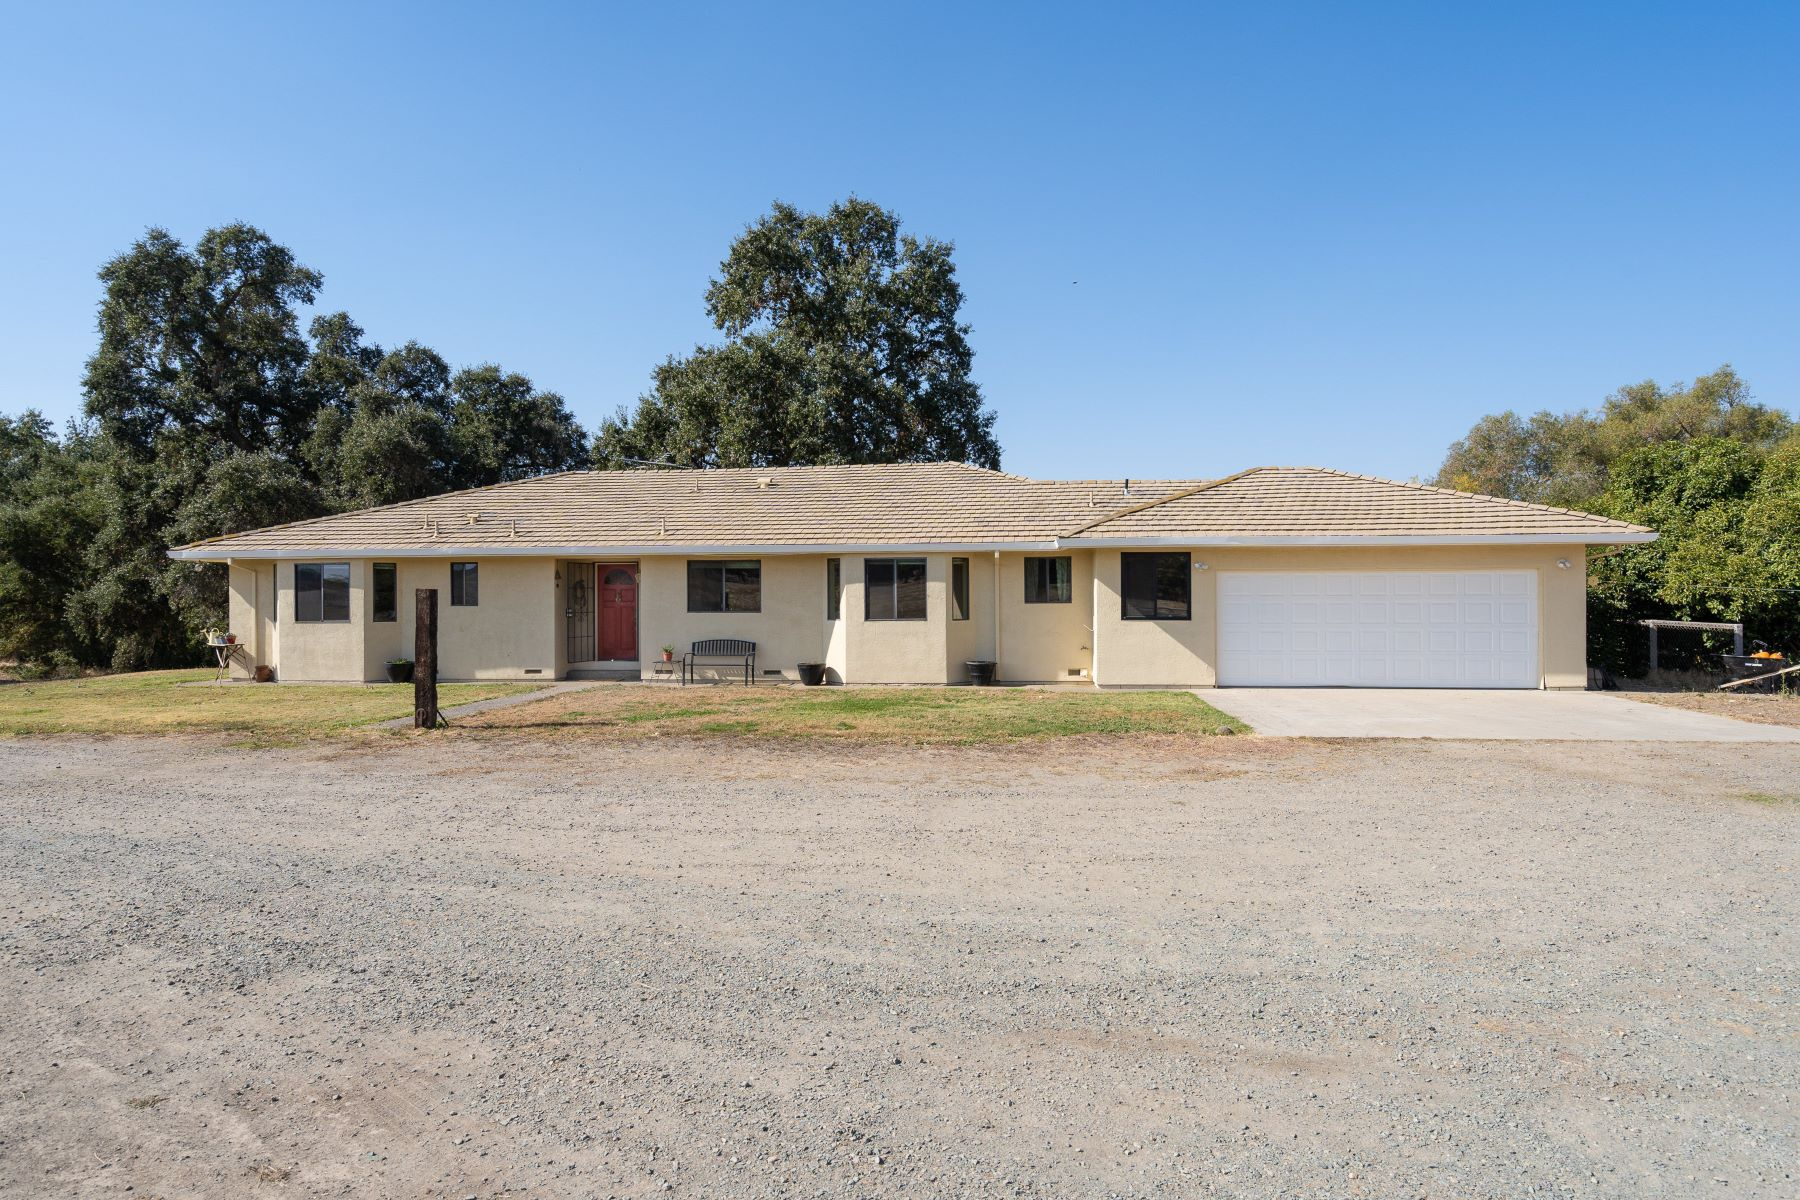 Single Family Homes for Sale at Super Cute Home on 3 Usable Acres Ready For Your Horses 24601 Ranchero Clements, California 95227 United States